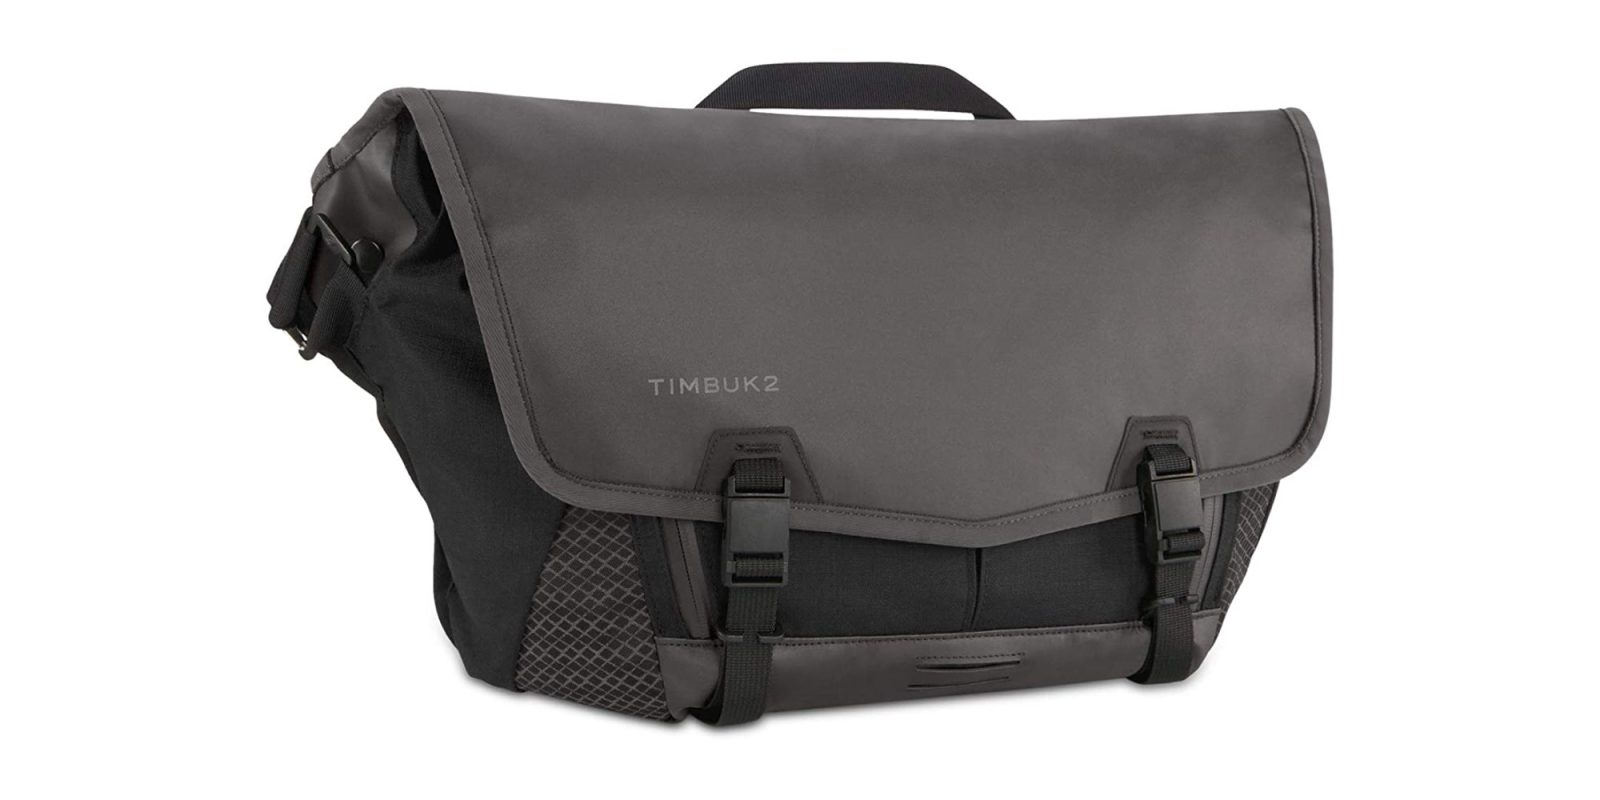 Bag brands from Cocoon to Timbuk2 are up to 30% off, priced from $20 at Amazon